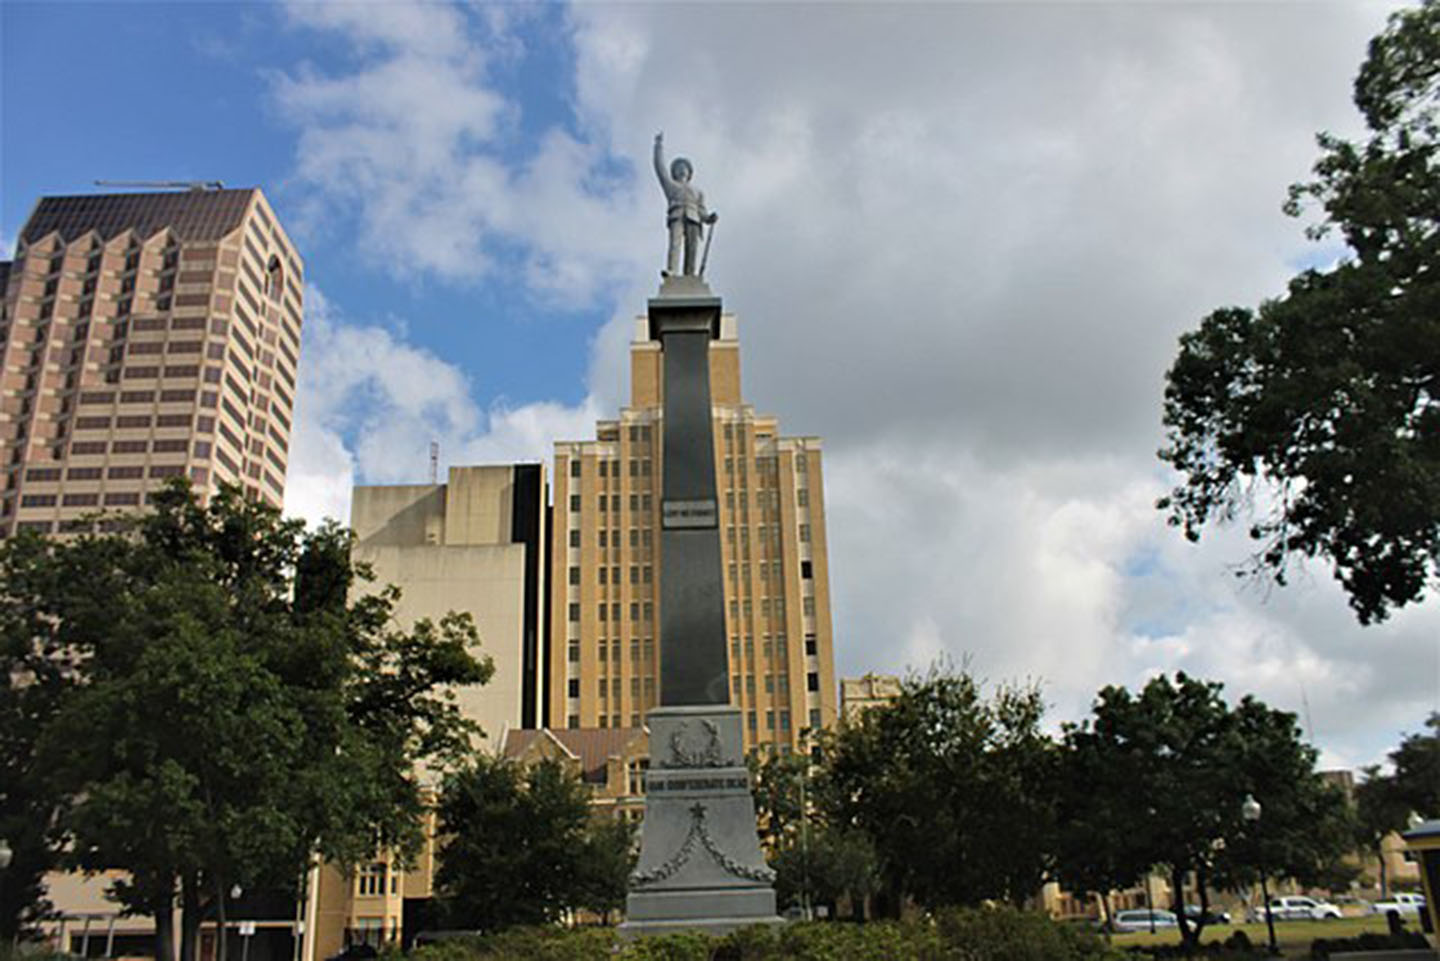 A statue in Travis Park, San Antonio, Texas. The statue was taken down on Sept. 1. (Wikimedia Commons).